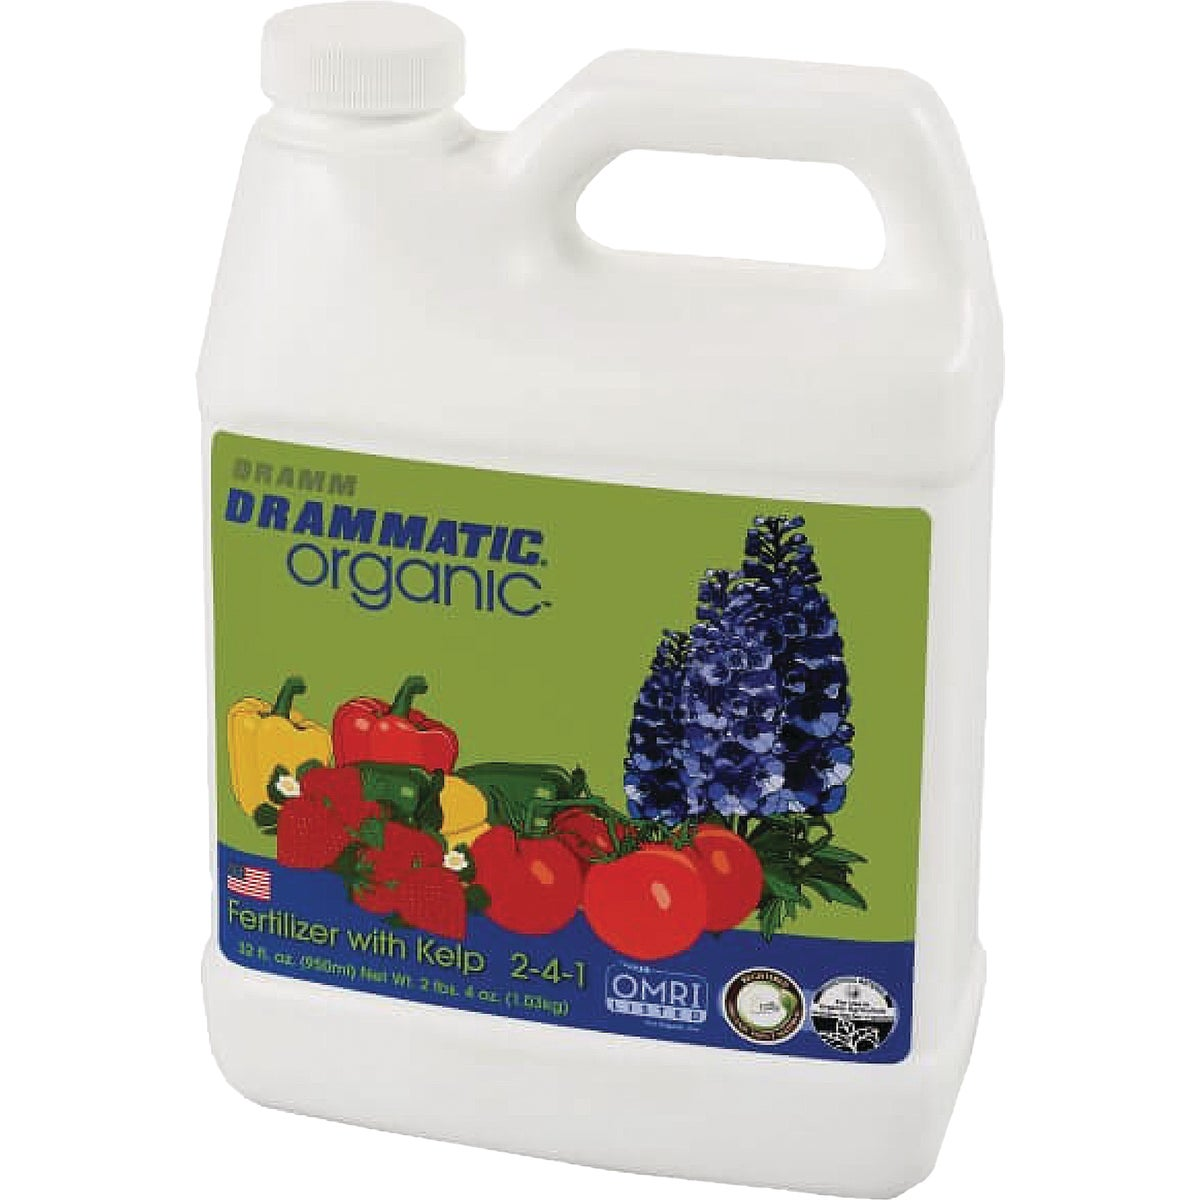 QT FISH/KELP FERTILIZER - 10-24001 by Dramm Corp